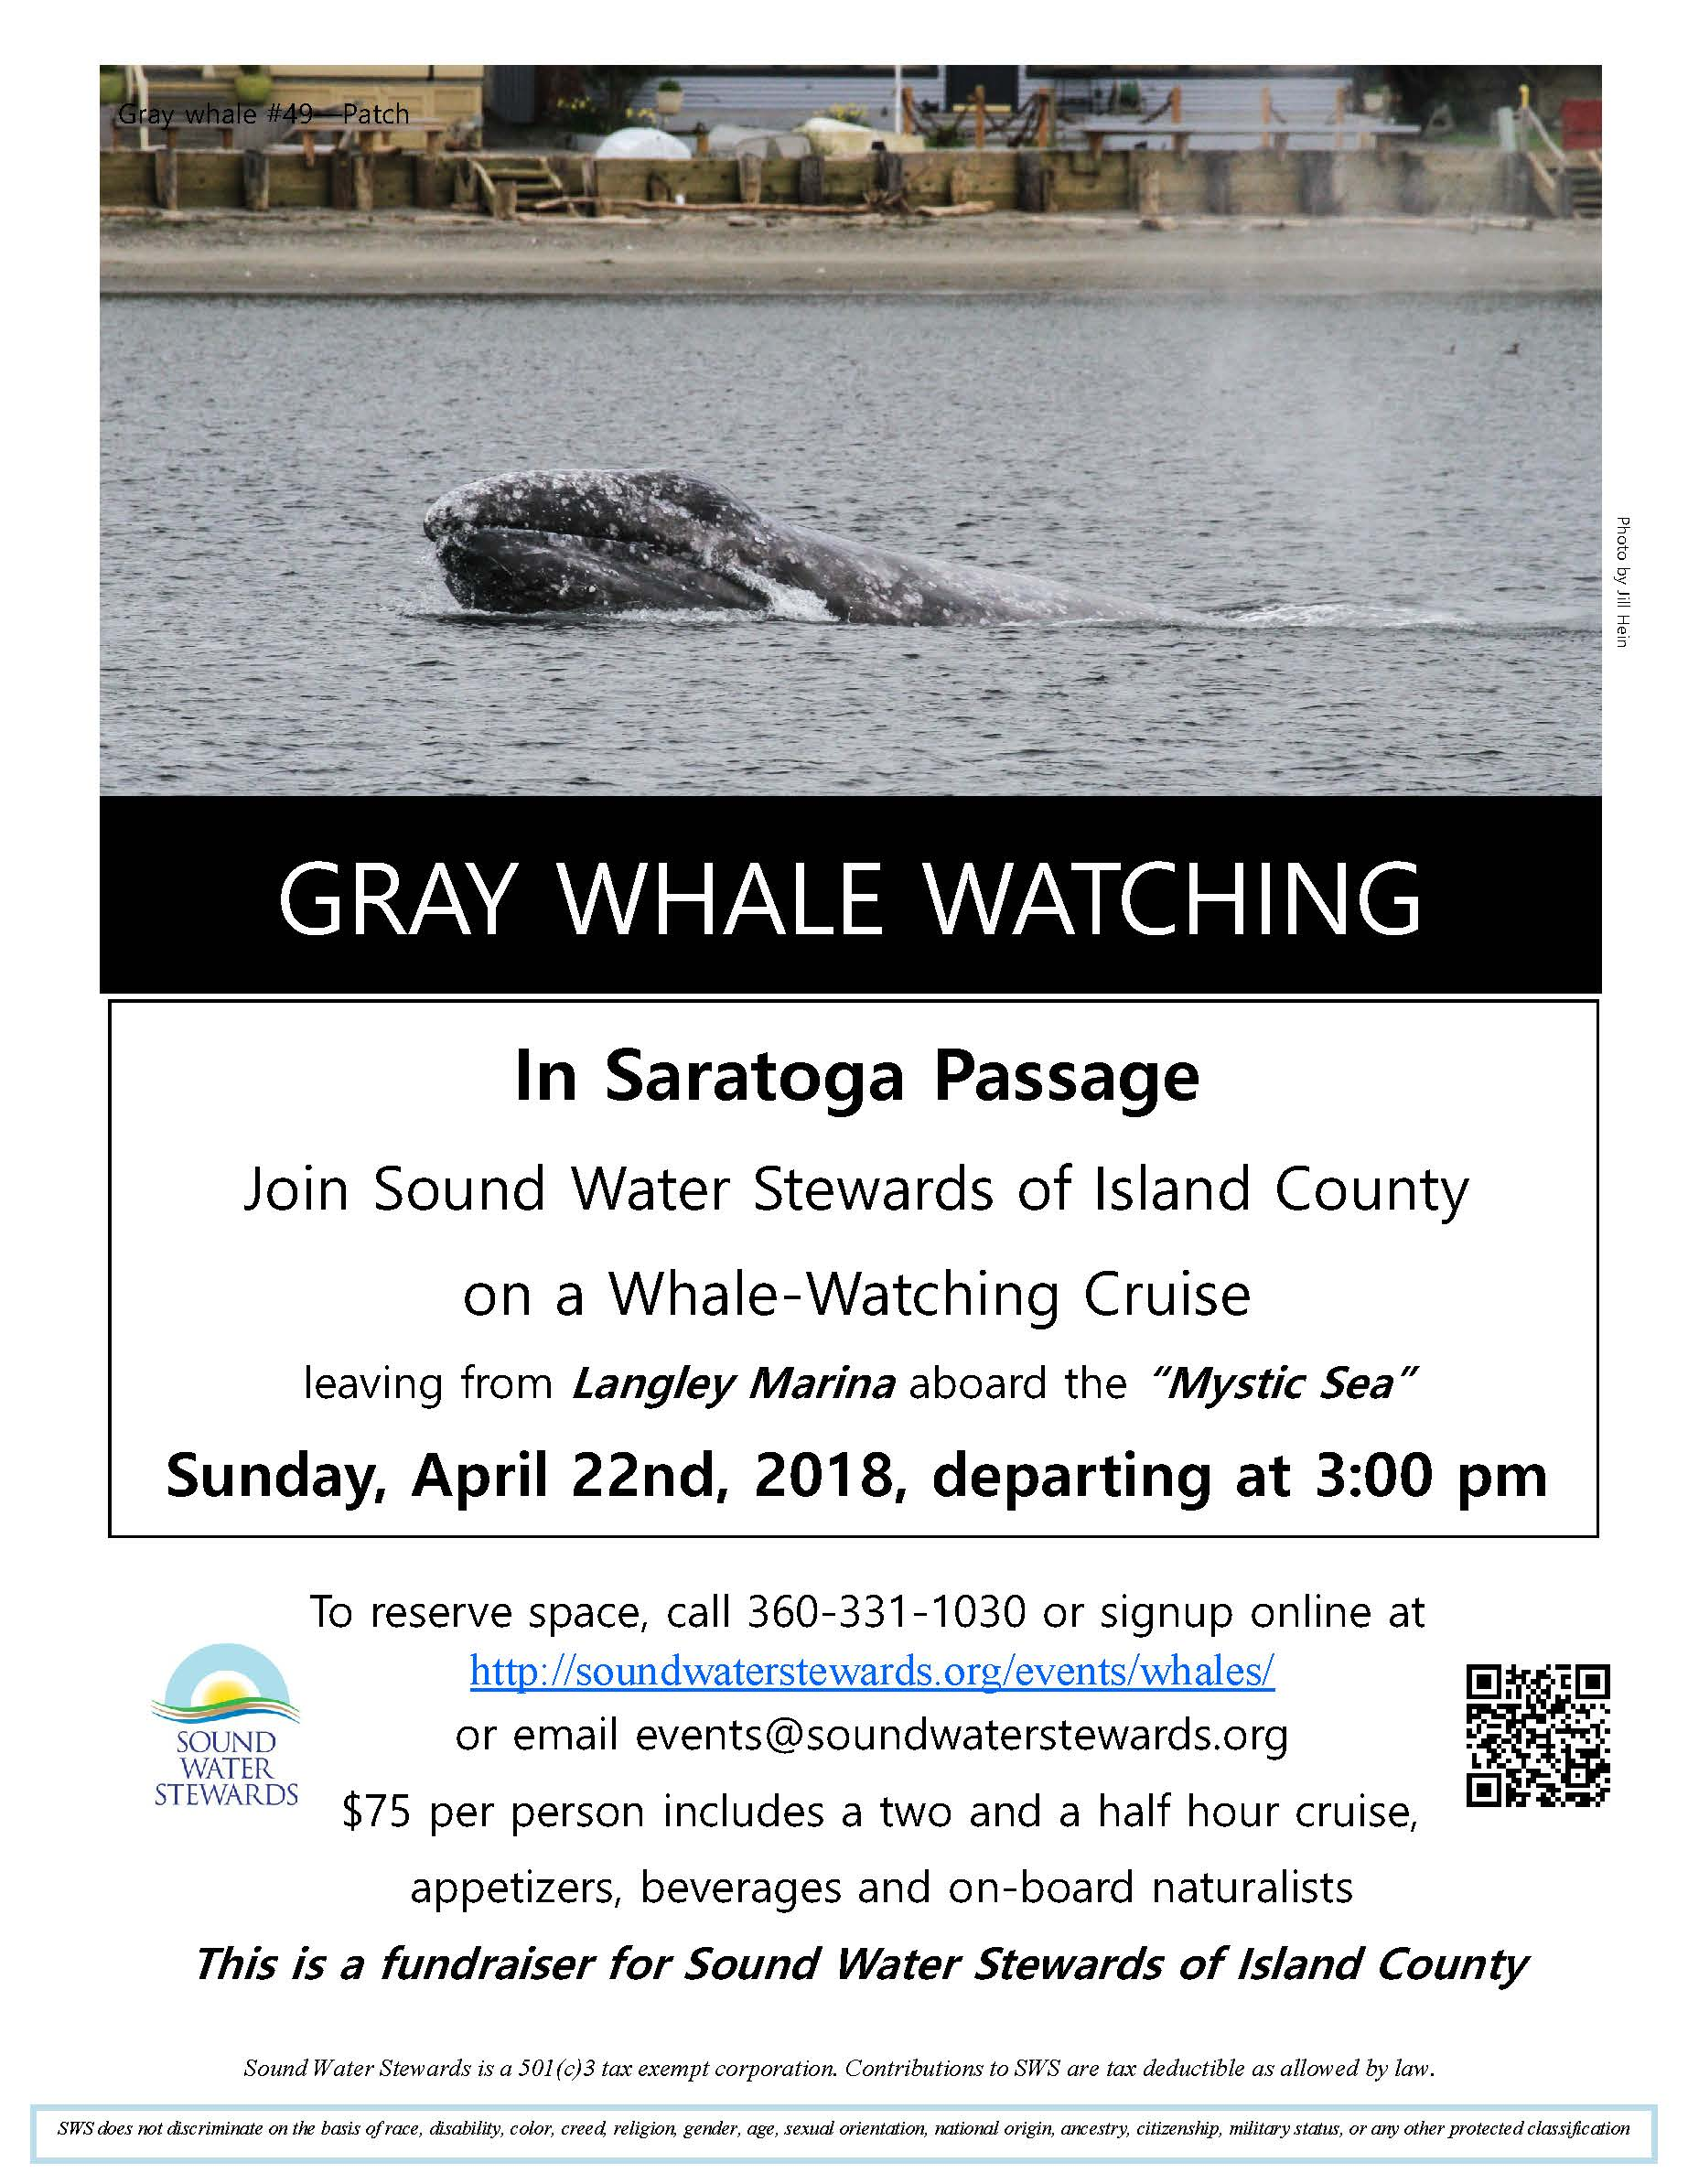 Whale-watching criuse 2018.jpg